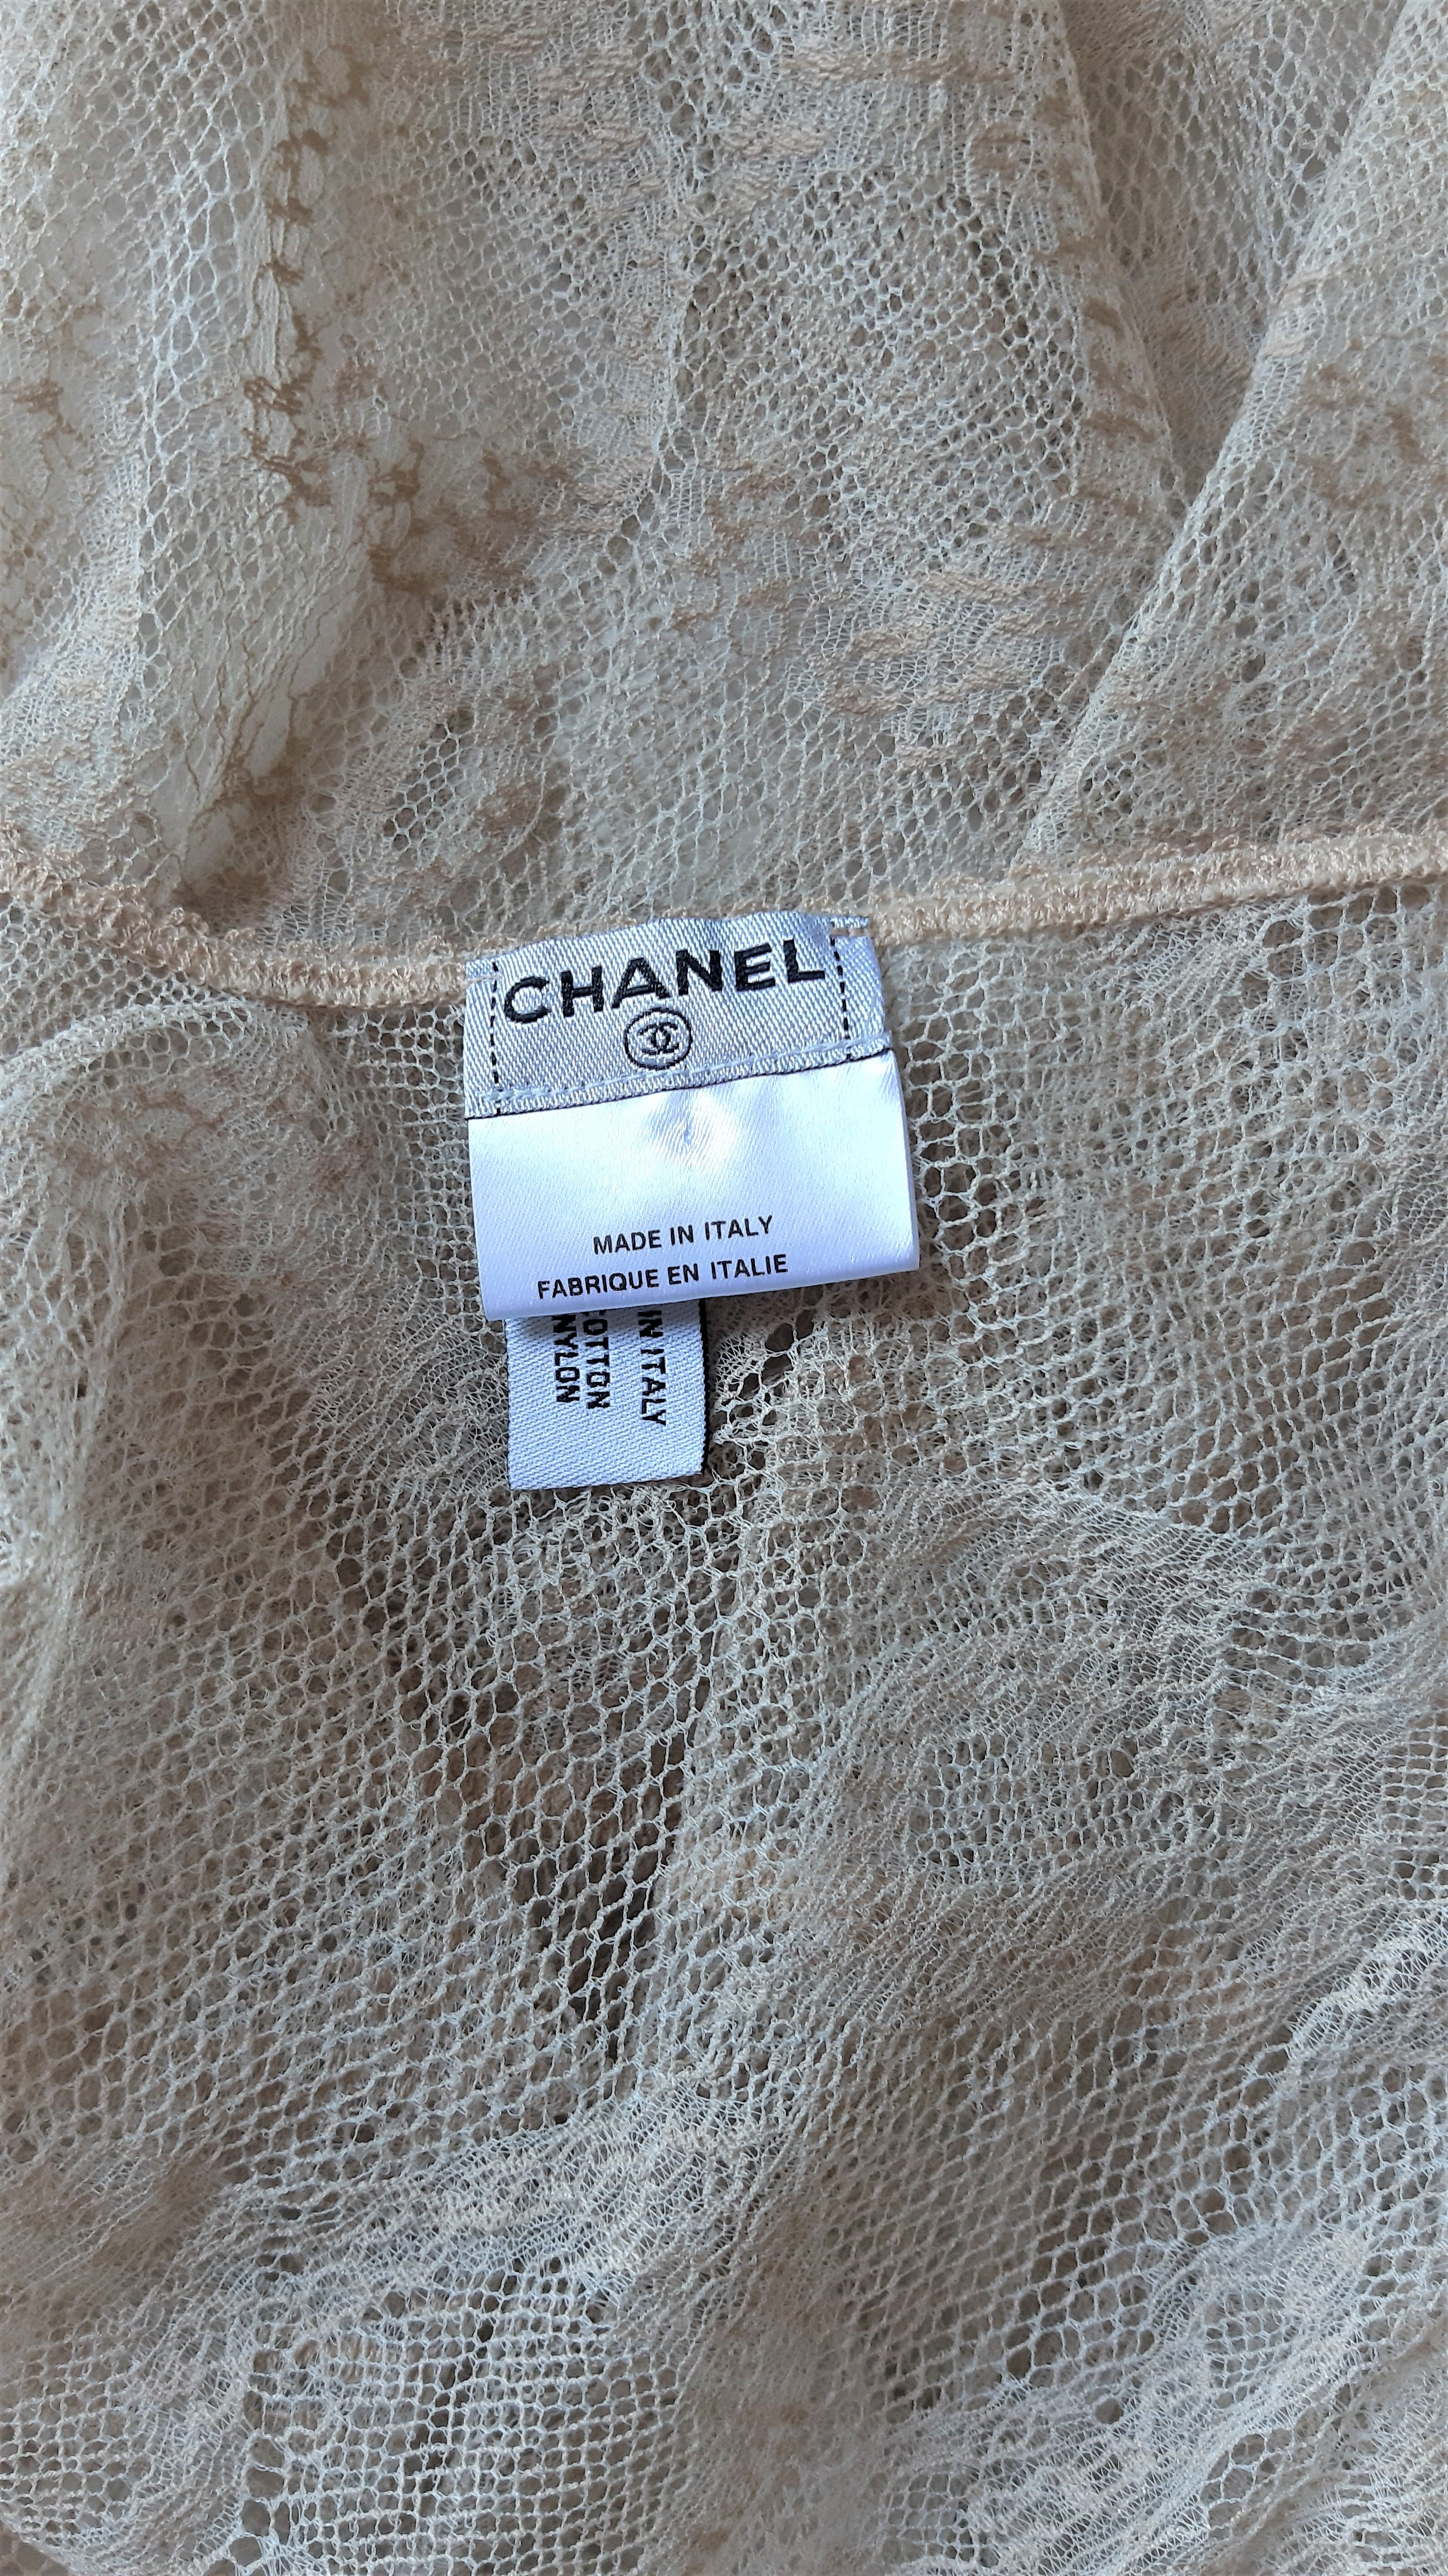 Chanel Beige Lace Top With Pastel Ribbons Size 38 (EU)